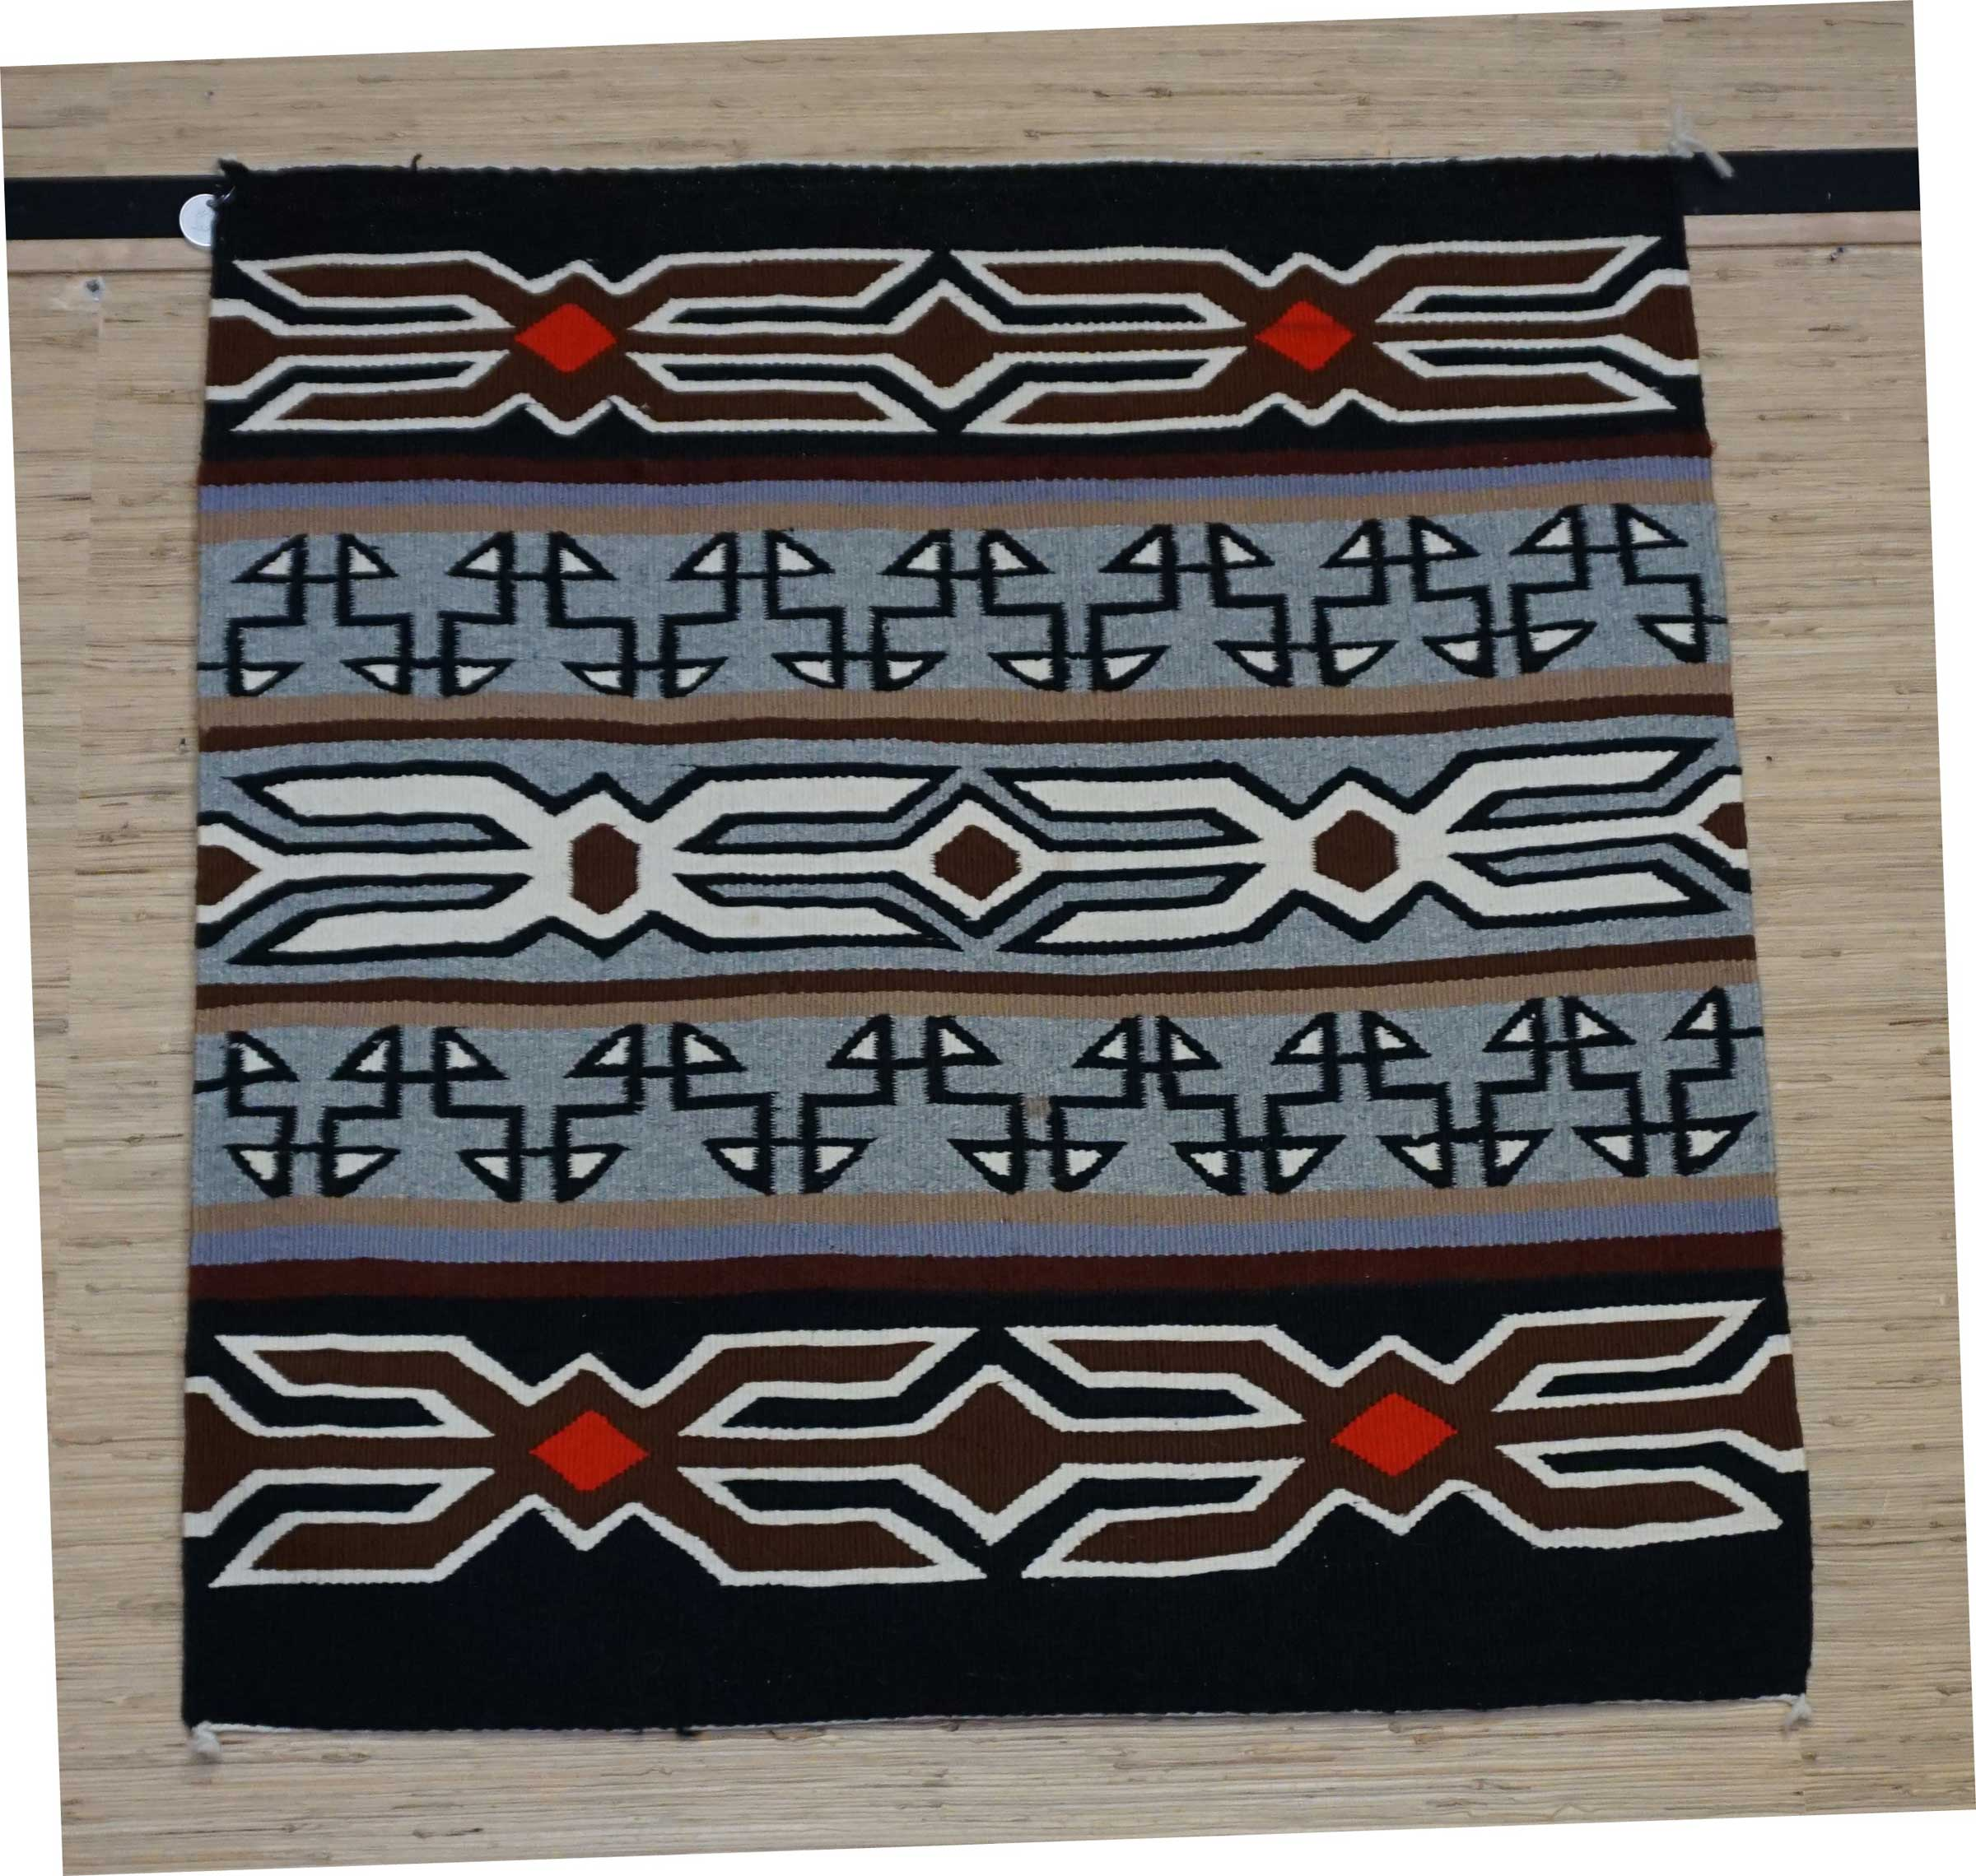 teec nos pos jewish singles Oten confused with its distant relative the teec nos pos,  the peak of the period dating back to the  crystal old style / bistie navajo weaving : elsie.